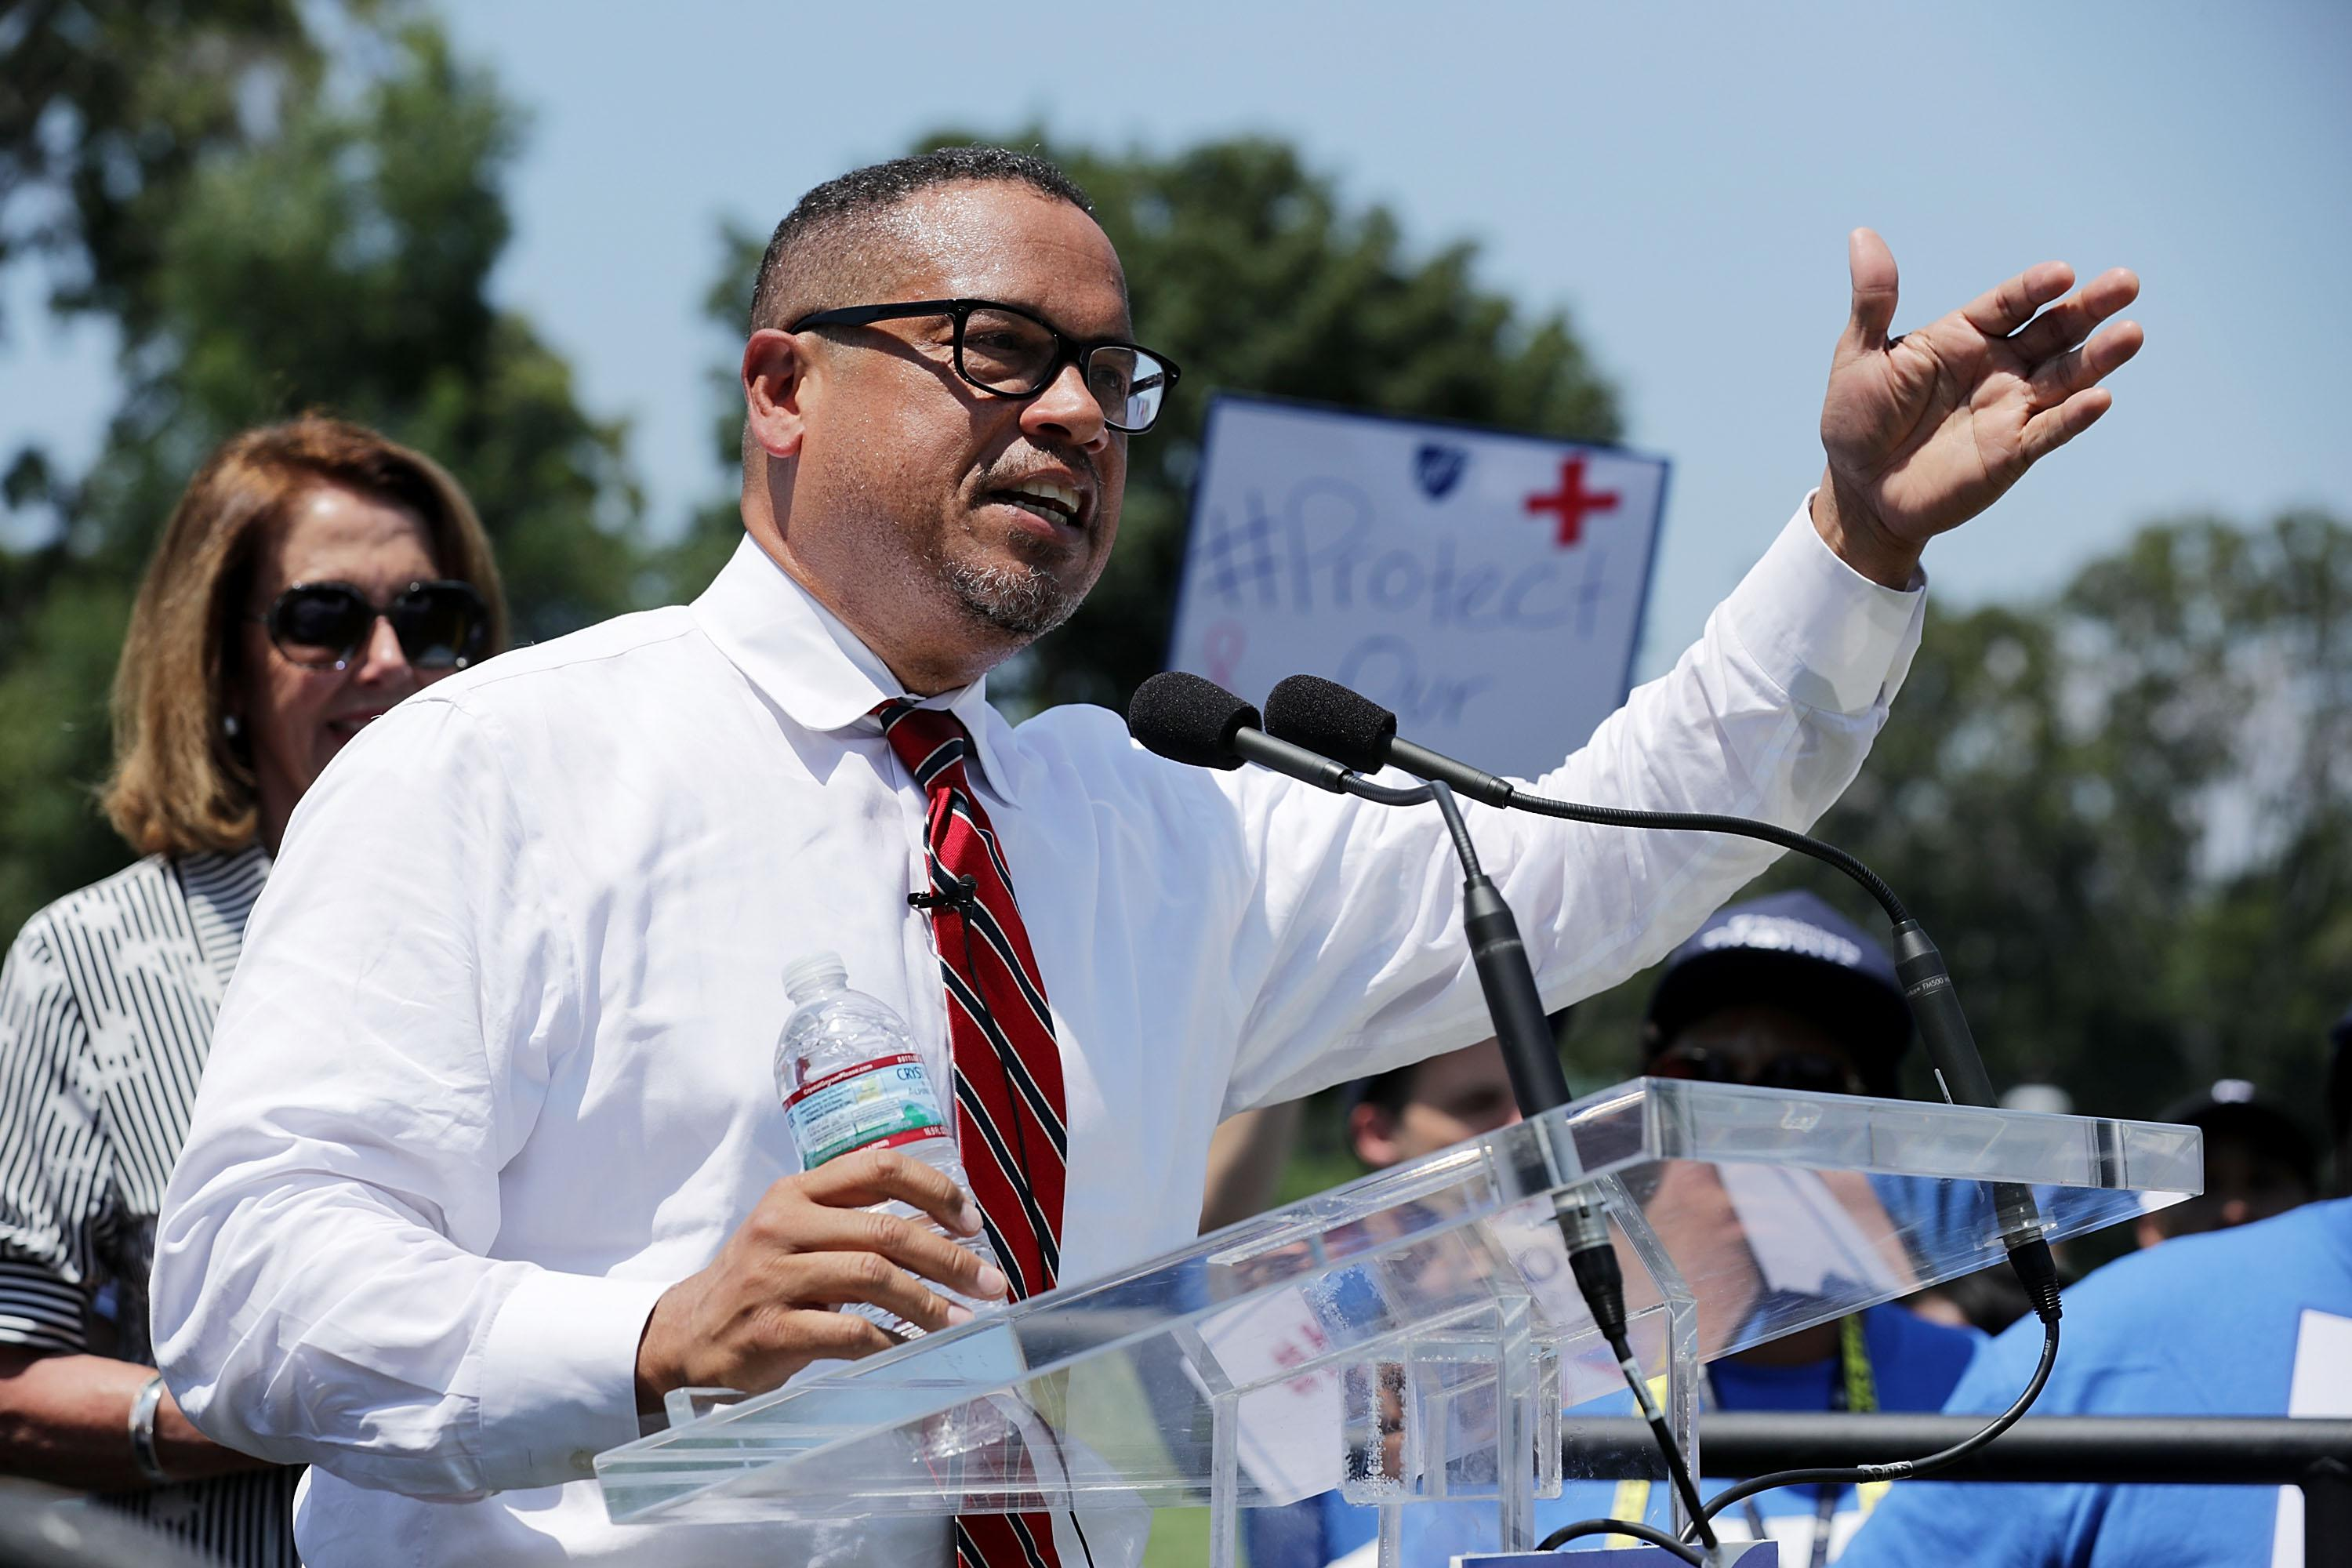 Ellison, in a white shirt and red tie, raises his arm to gesture to a crowd as he speaks. Behind him, people wave signs.